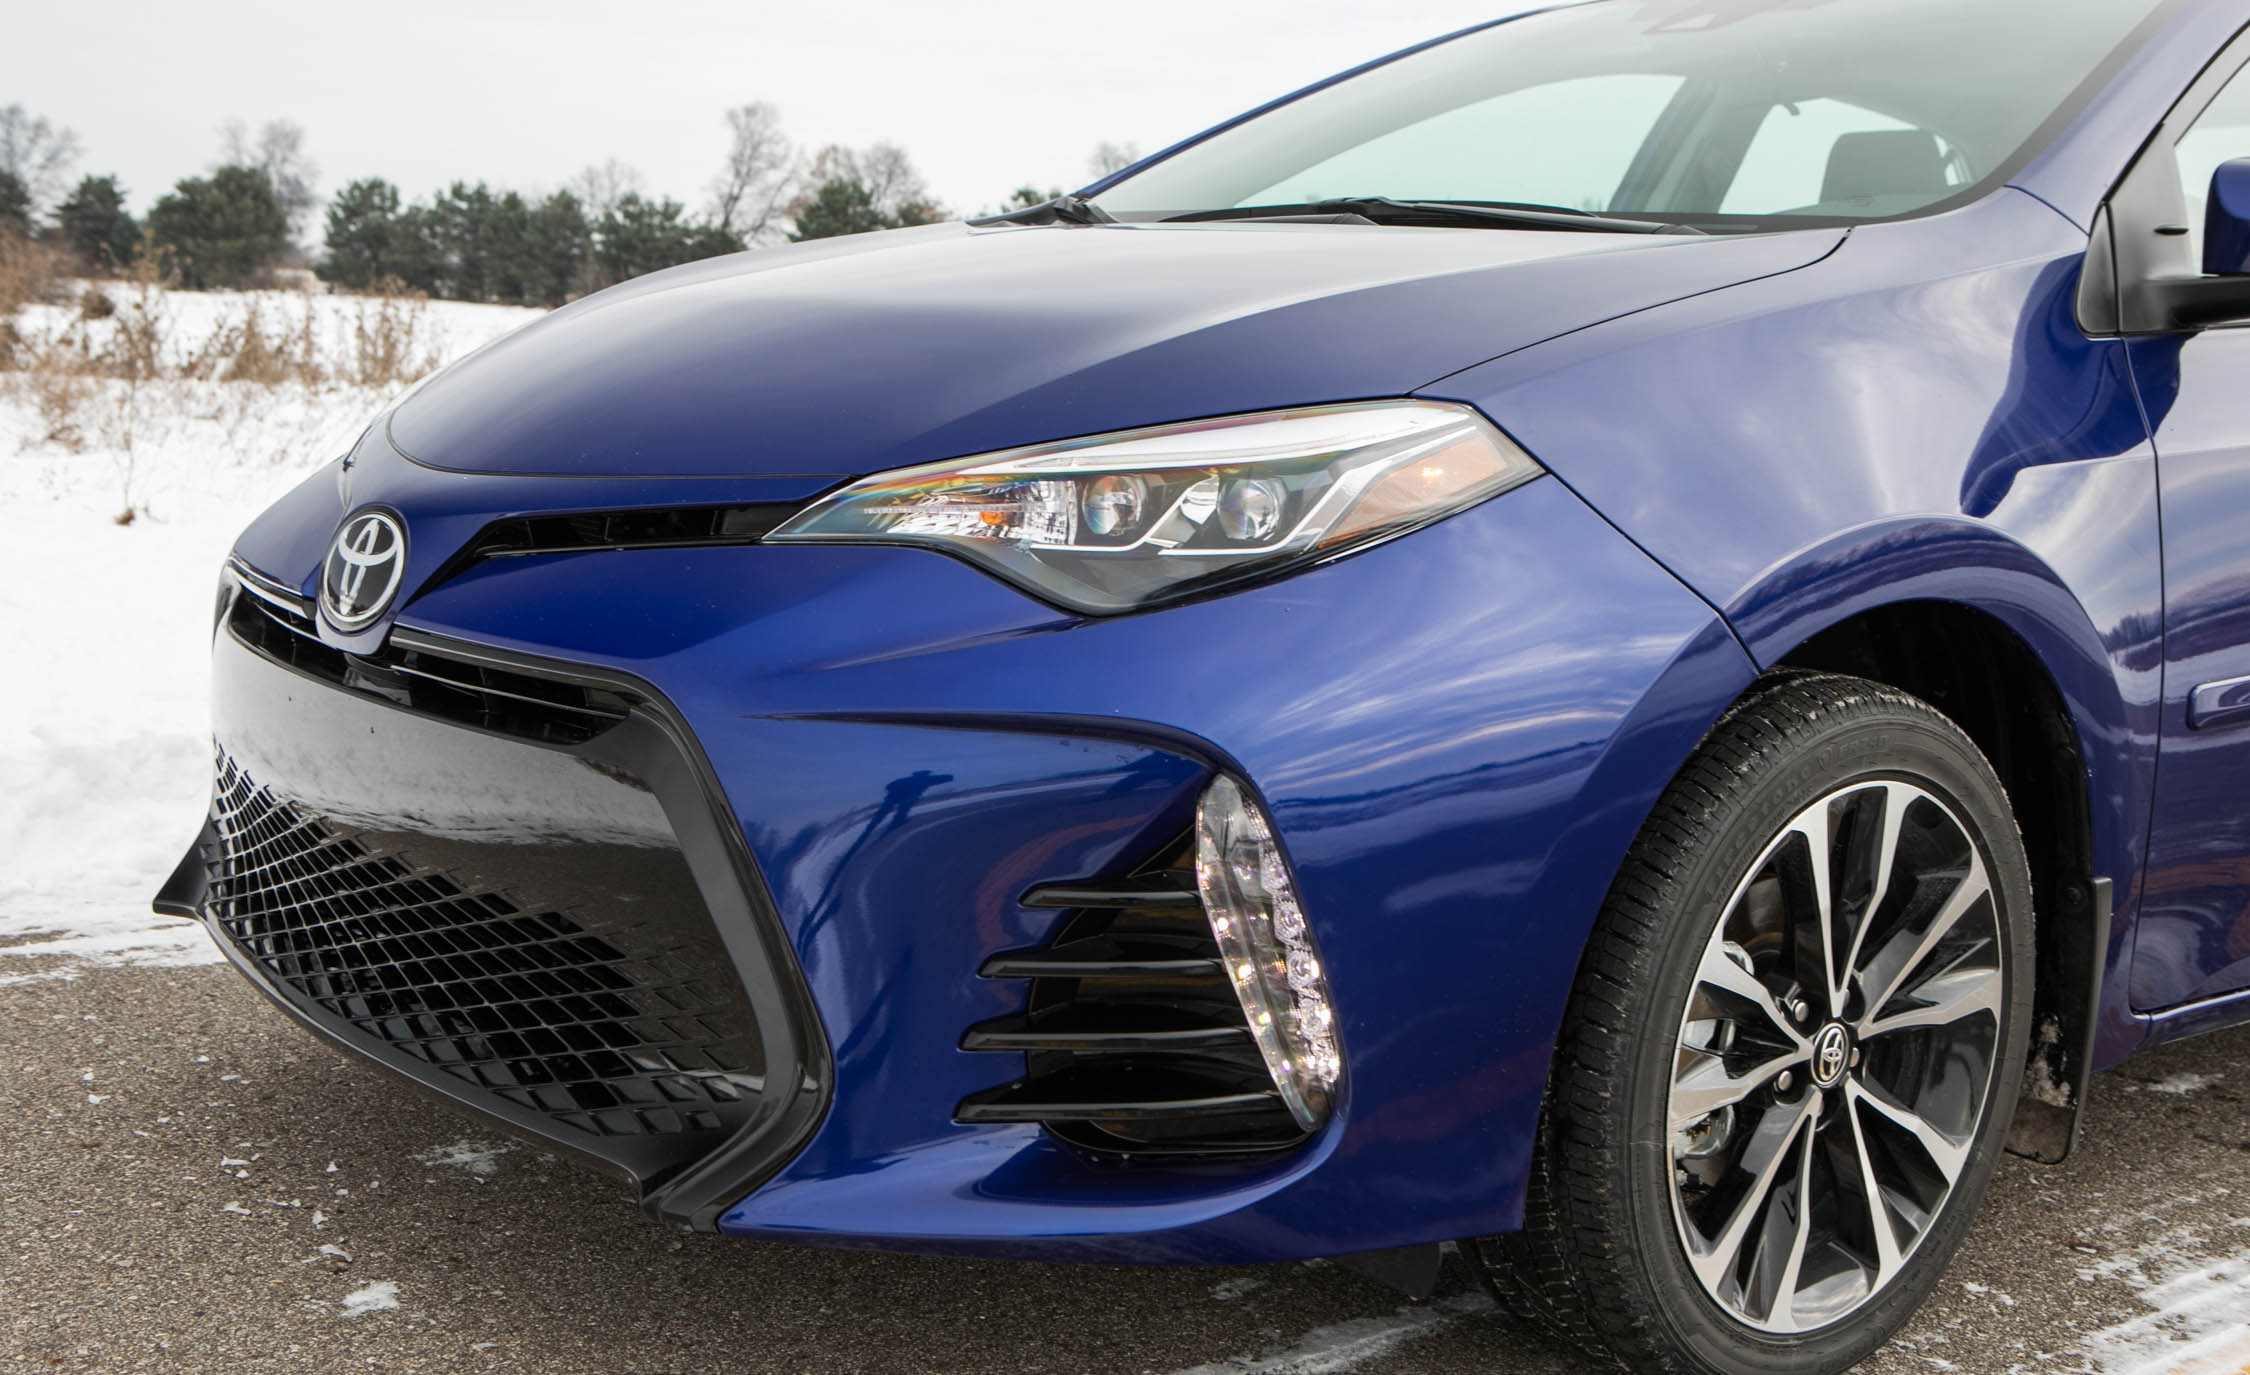 2017 Toyota Corolla XSE Exterior View Grille And Bumper (Photo 44 of 75)